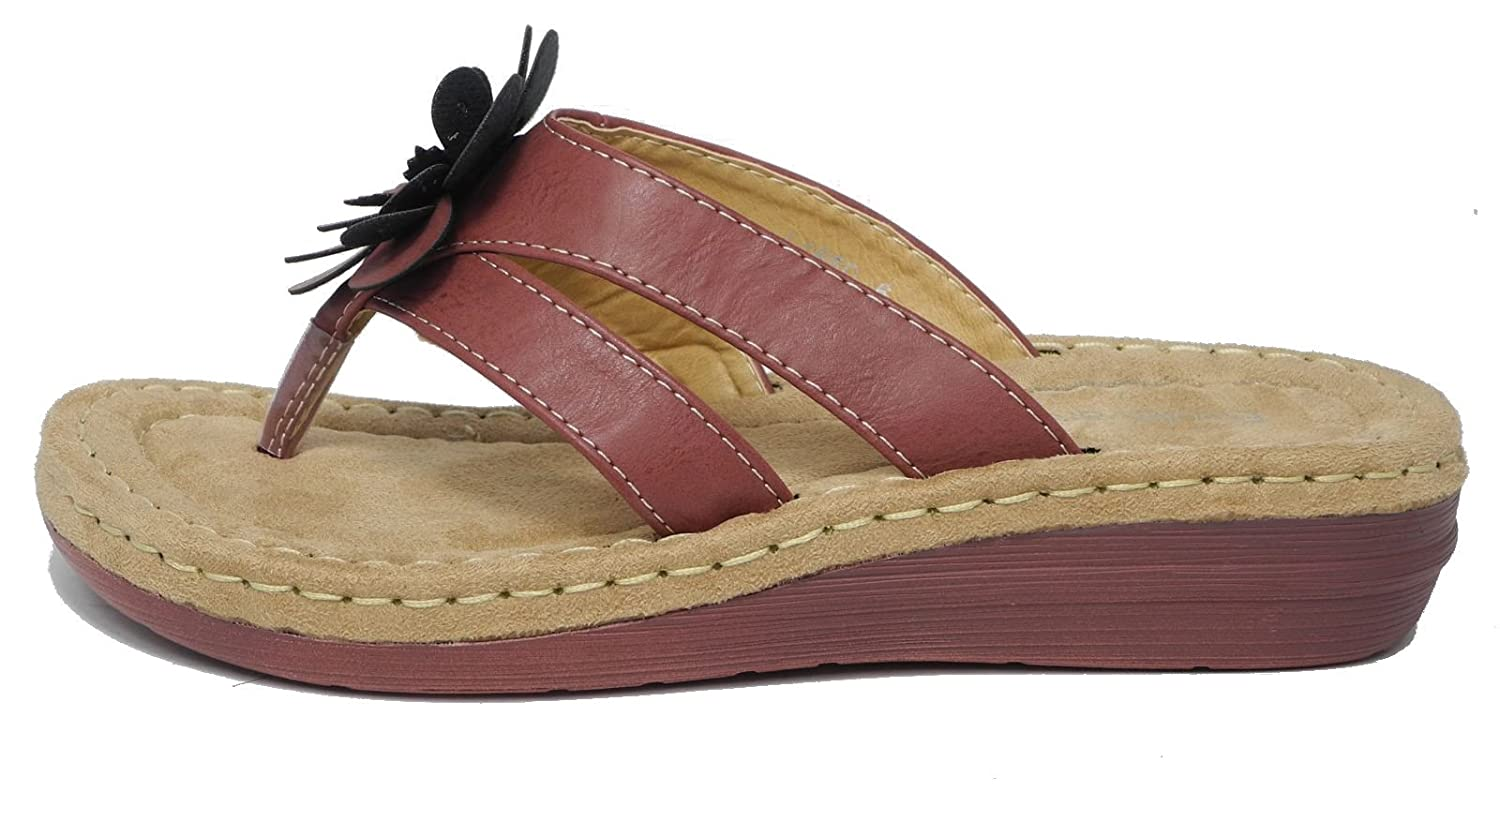 Womens Ladies Leather Look Toe Post Flip Flops Cushion Comfort Sandals  BURGUNDY 6: Amazon.co.uk: Shoes & Bags